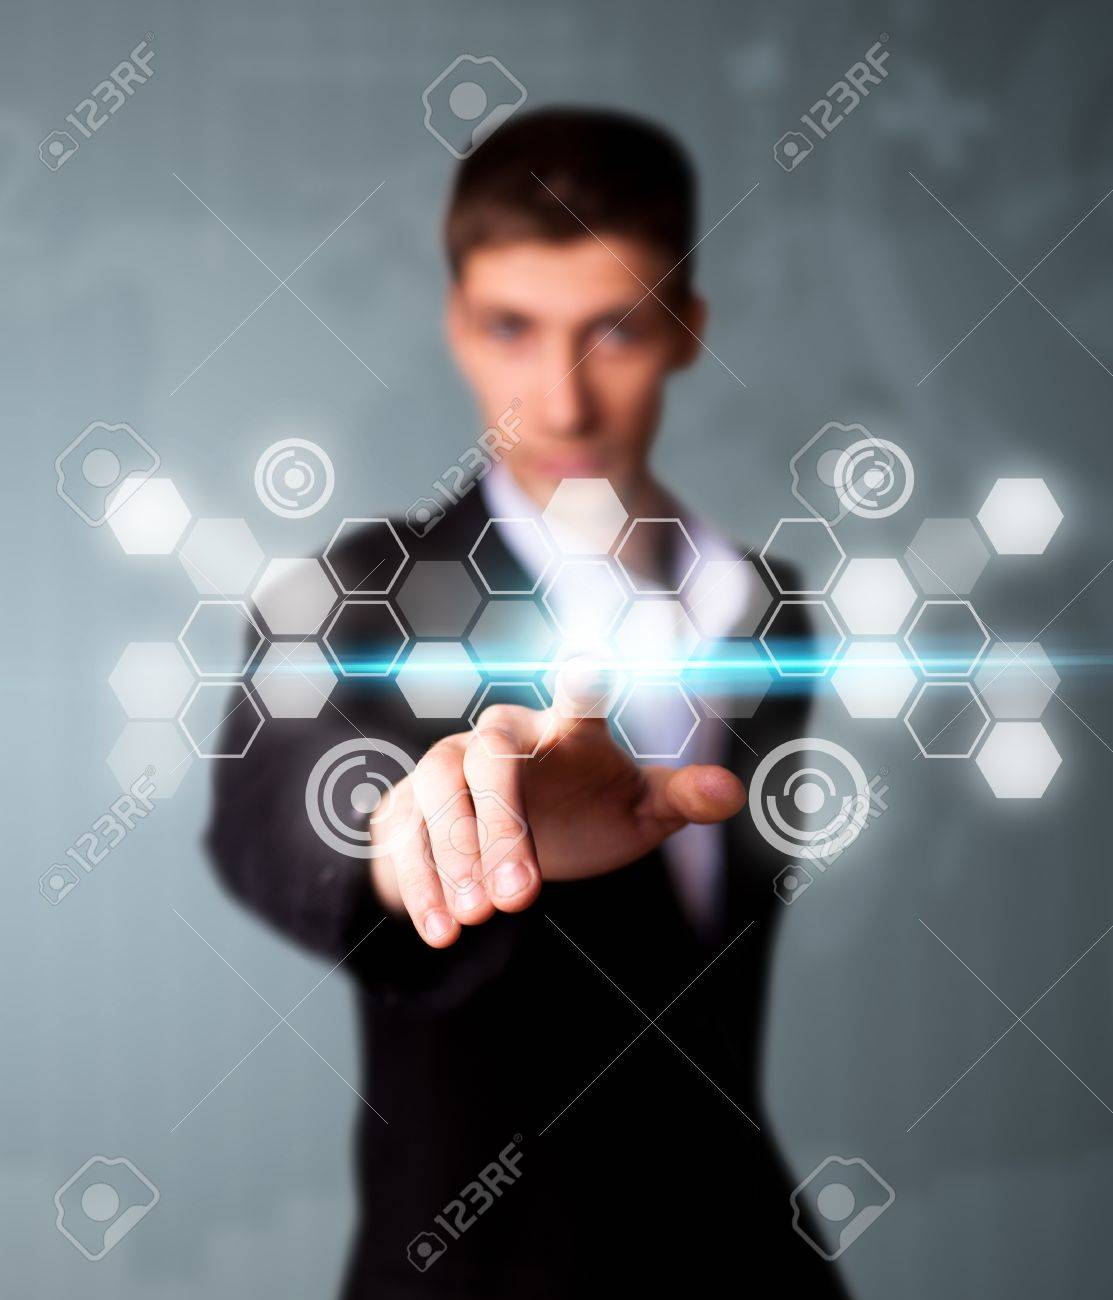 Man pressing digital button, futuristic technology Stock Photo - 9342338